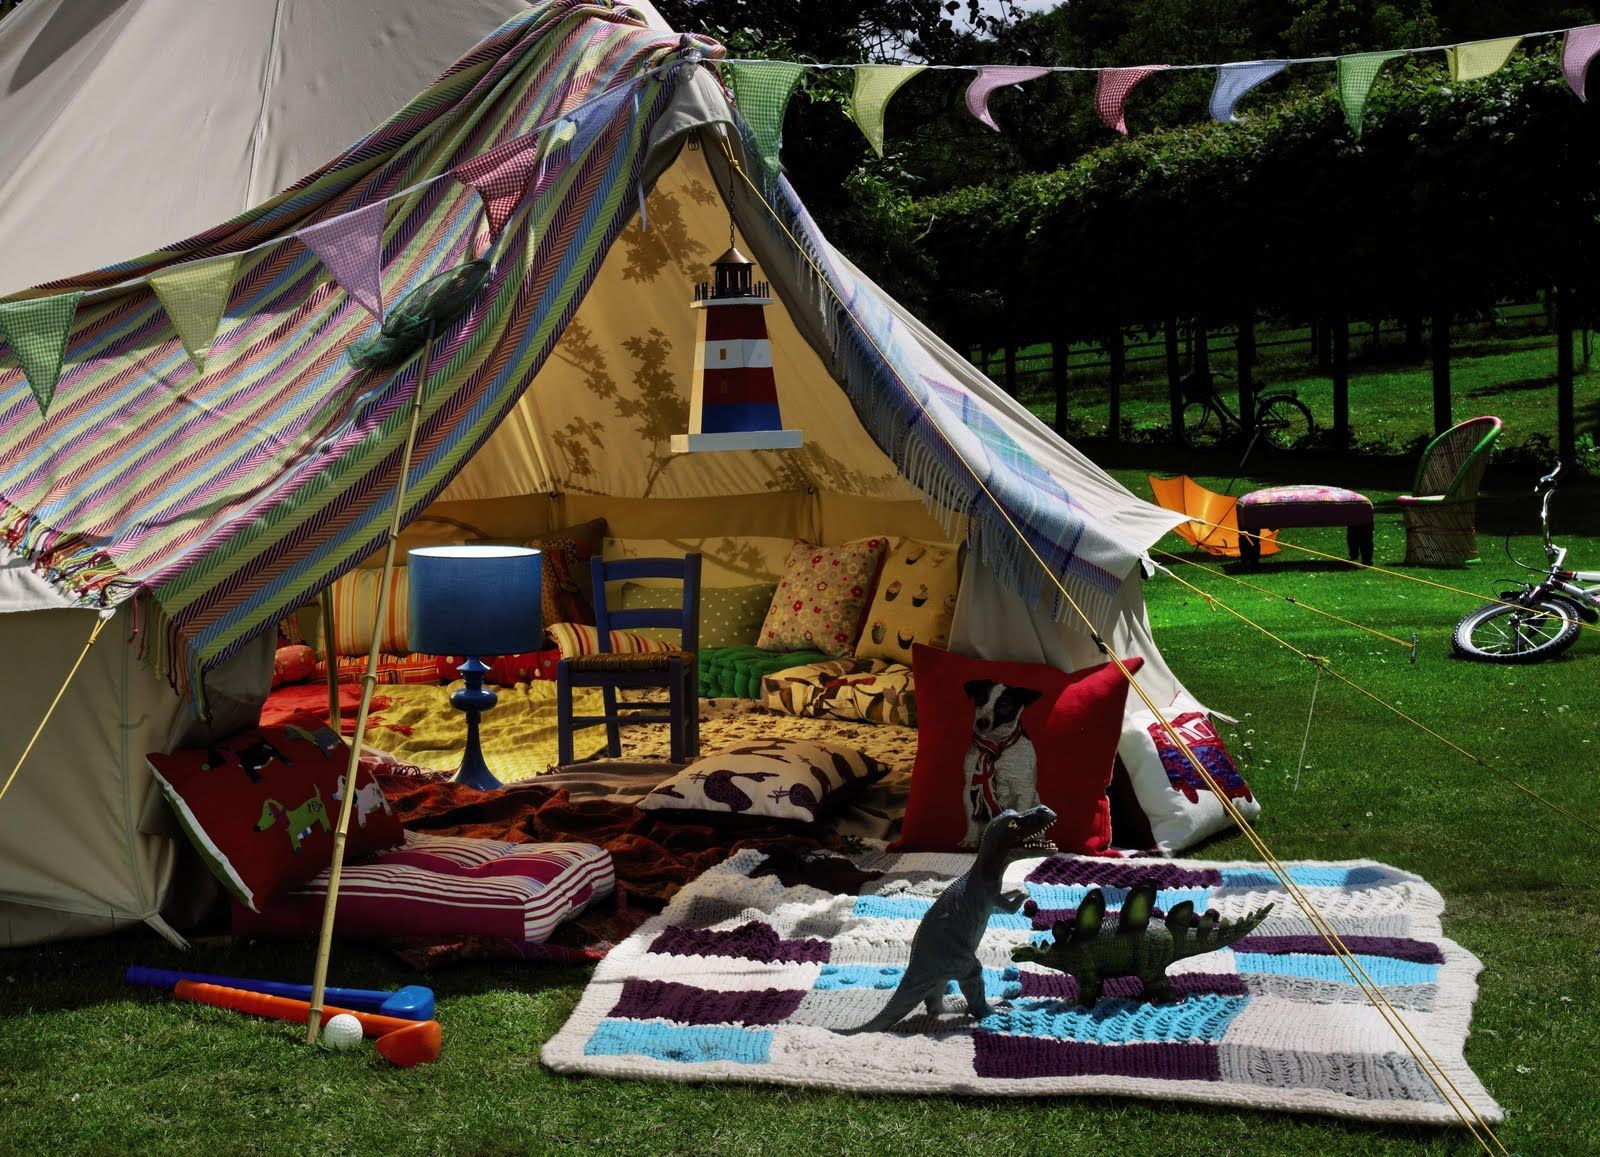 what is it? it is a glamping tent, darling! a glamorous tent ...